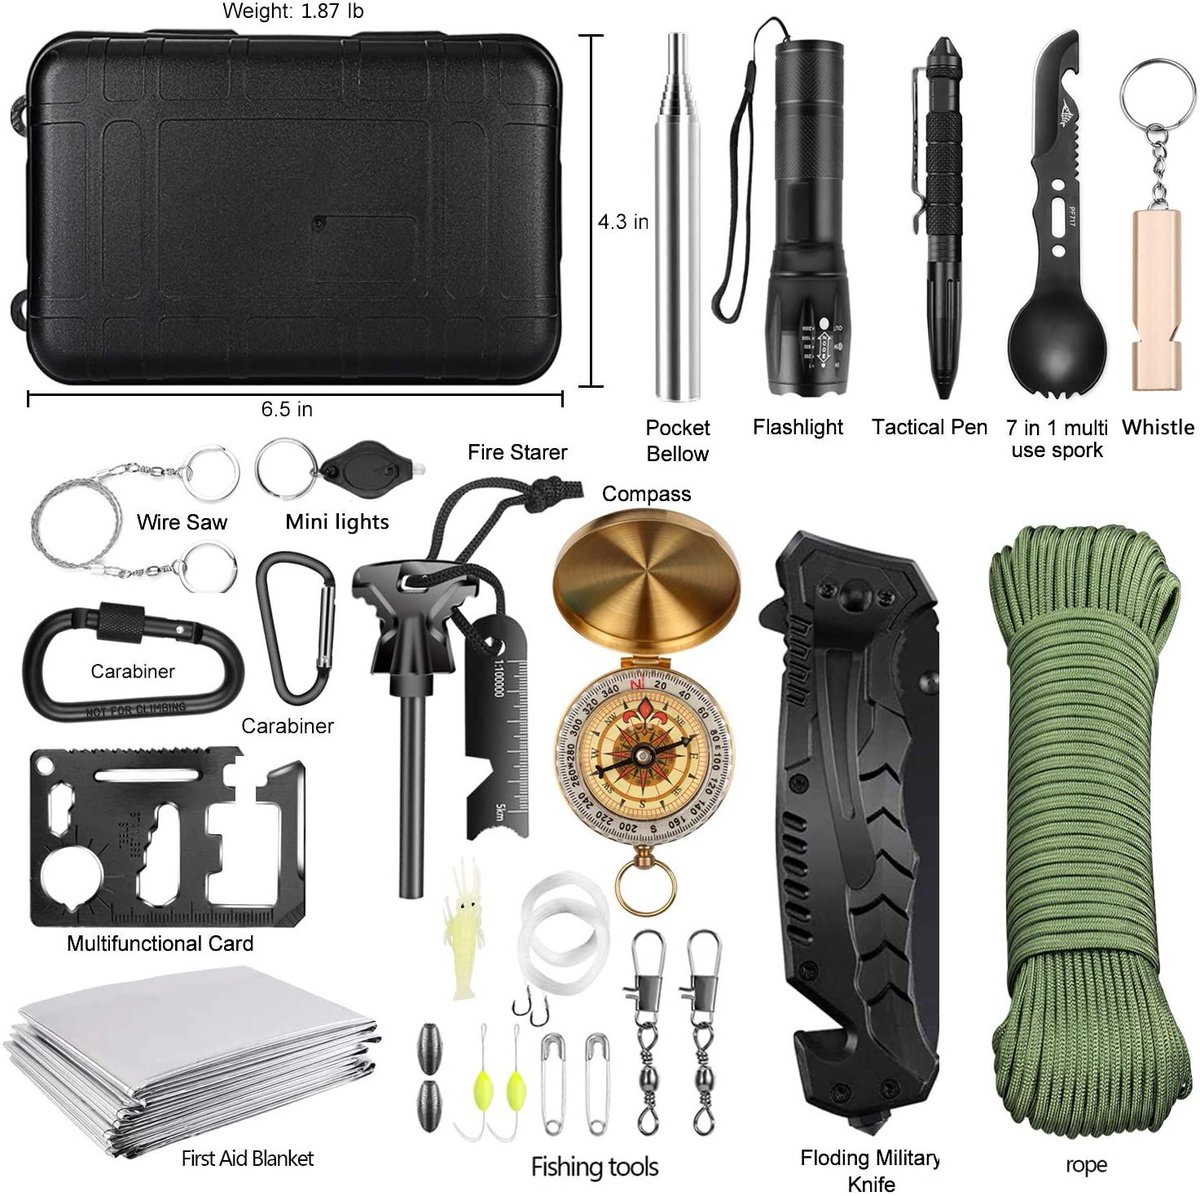 ad: 40% off  Emergency Survival Kit   use code 7V3PENDC at checkout  Link0 Link0